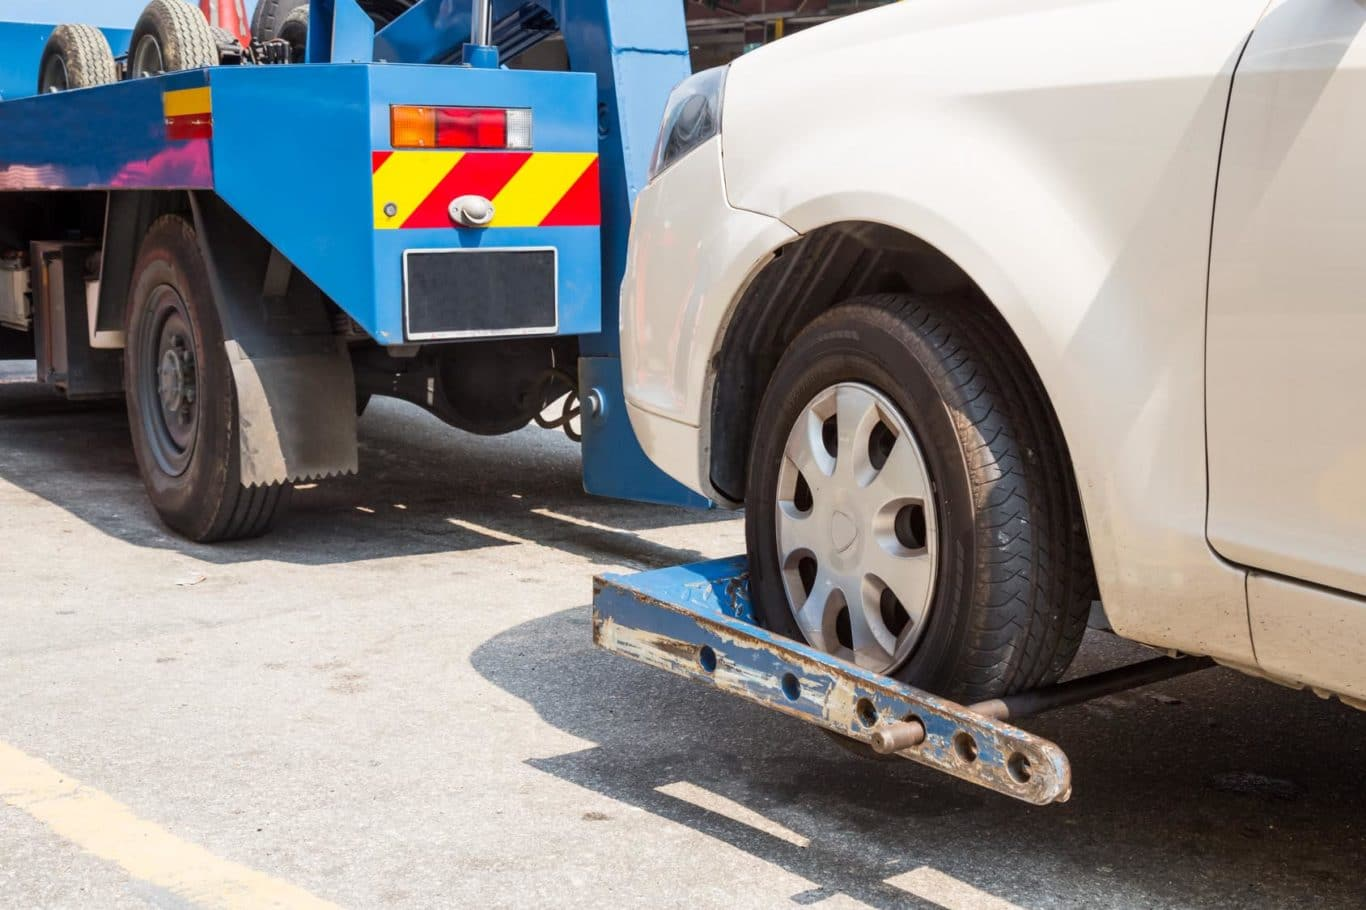 Kells, County Meath expert Towing services